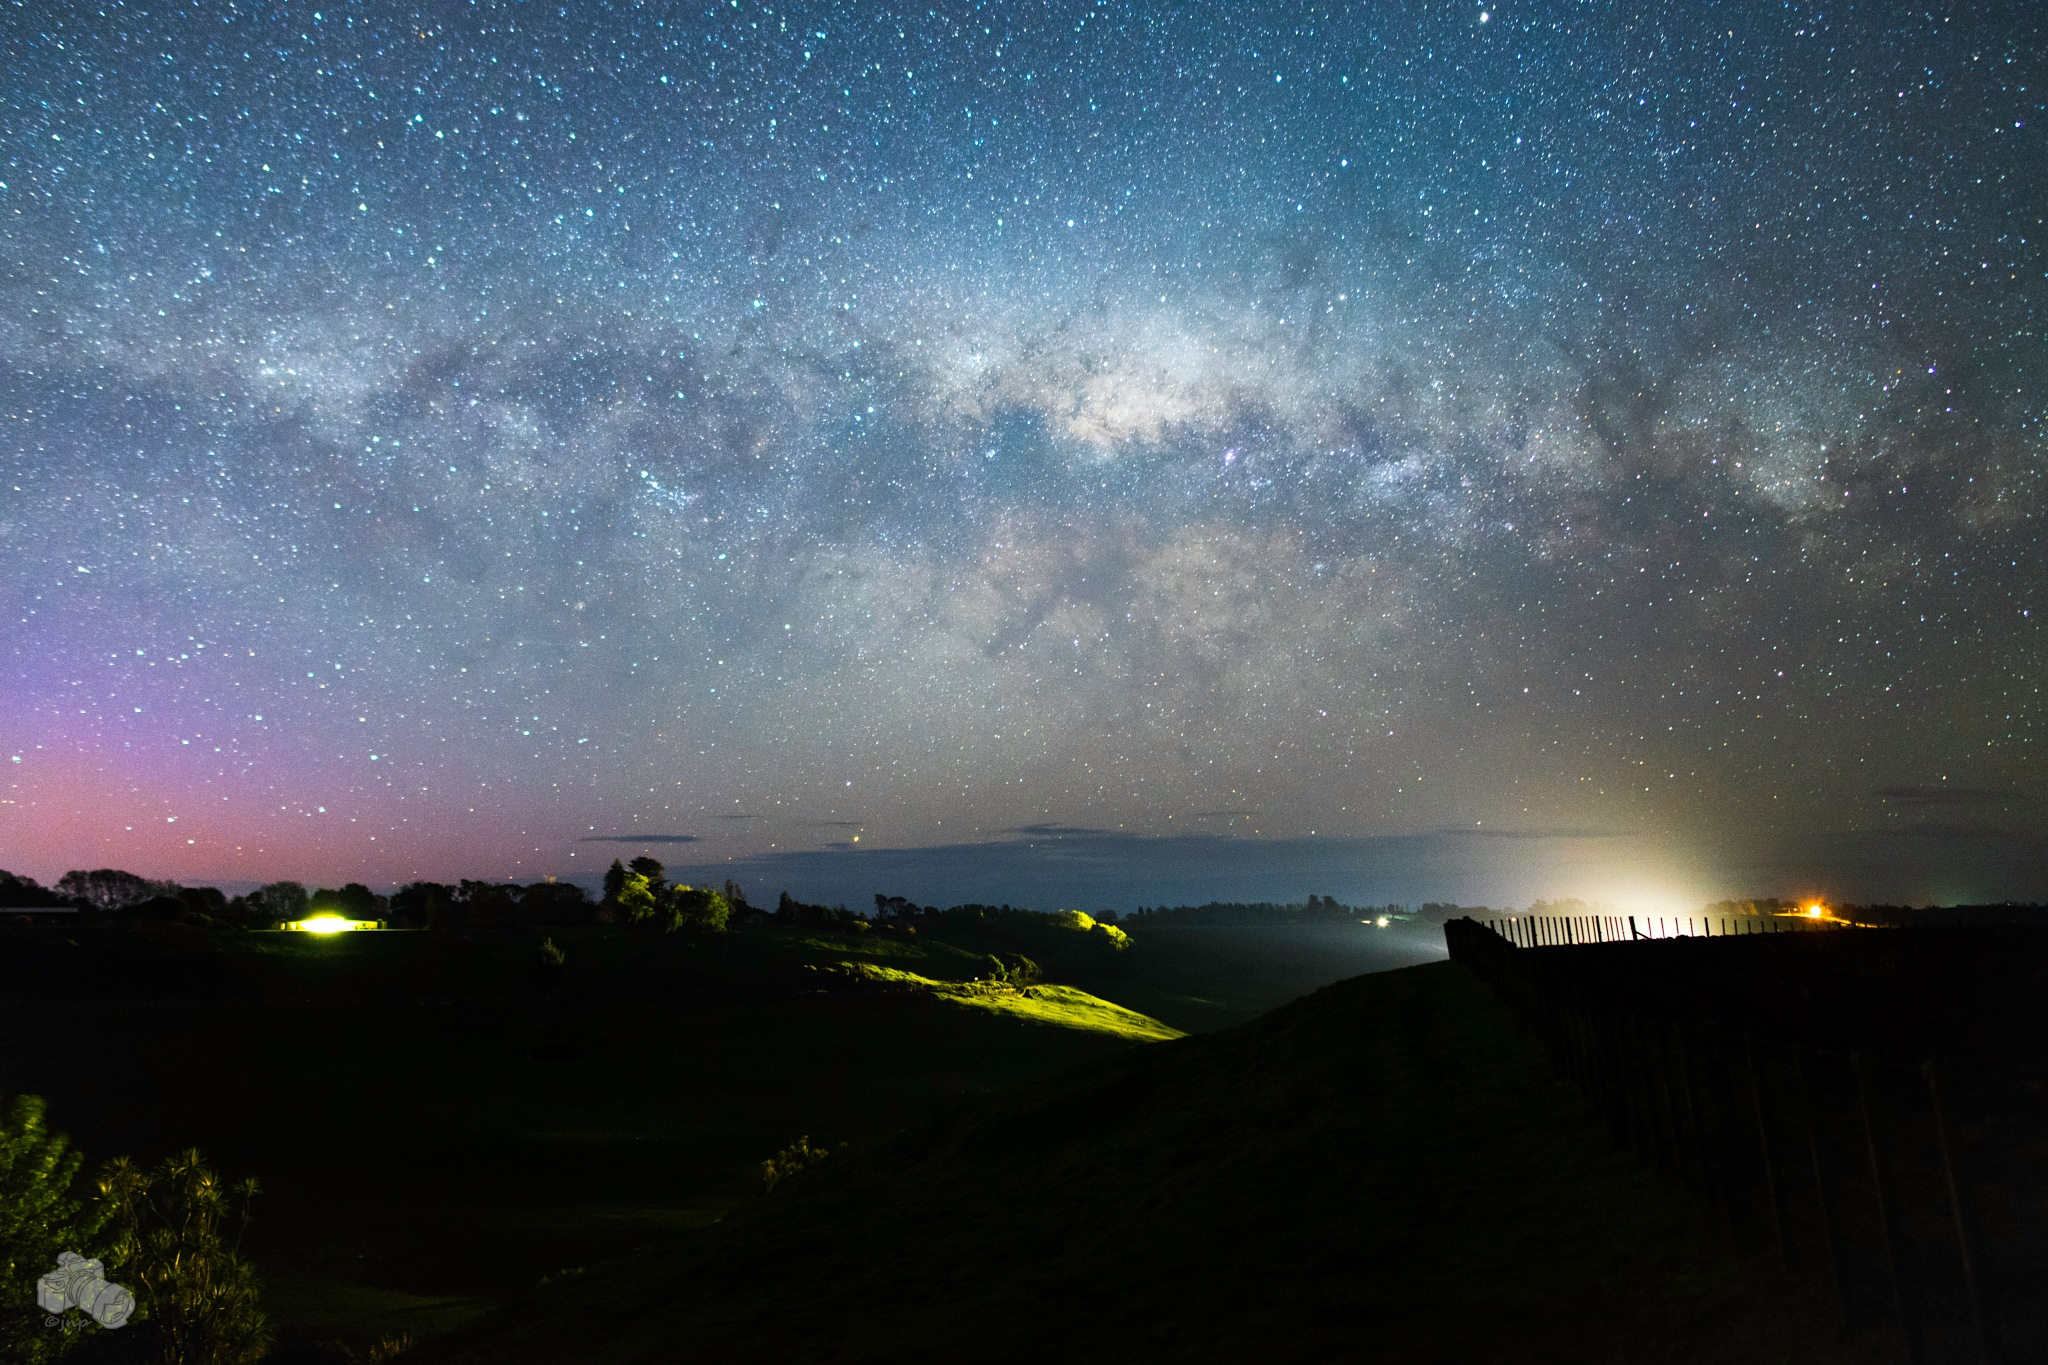 milk train, aurora, milky way all in one by Since 74 Photography